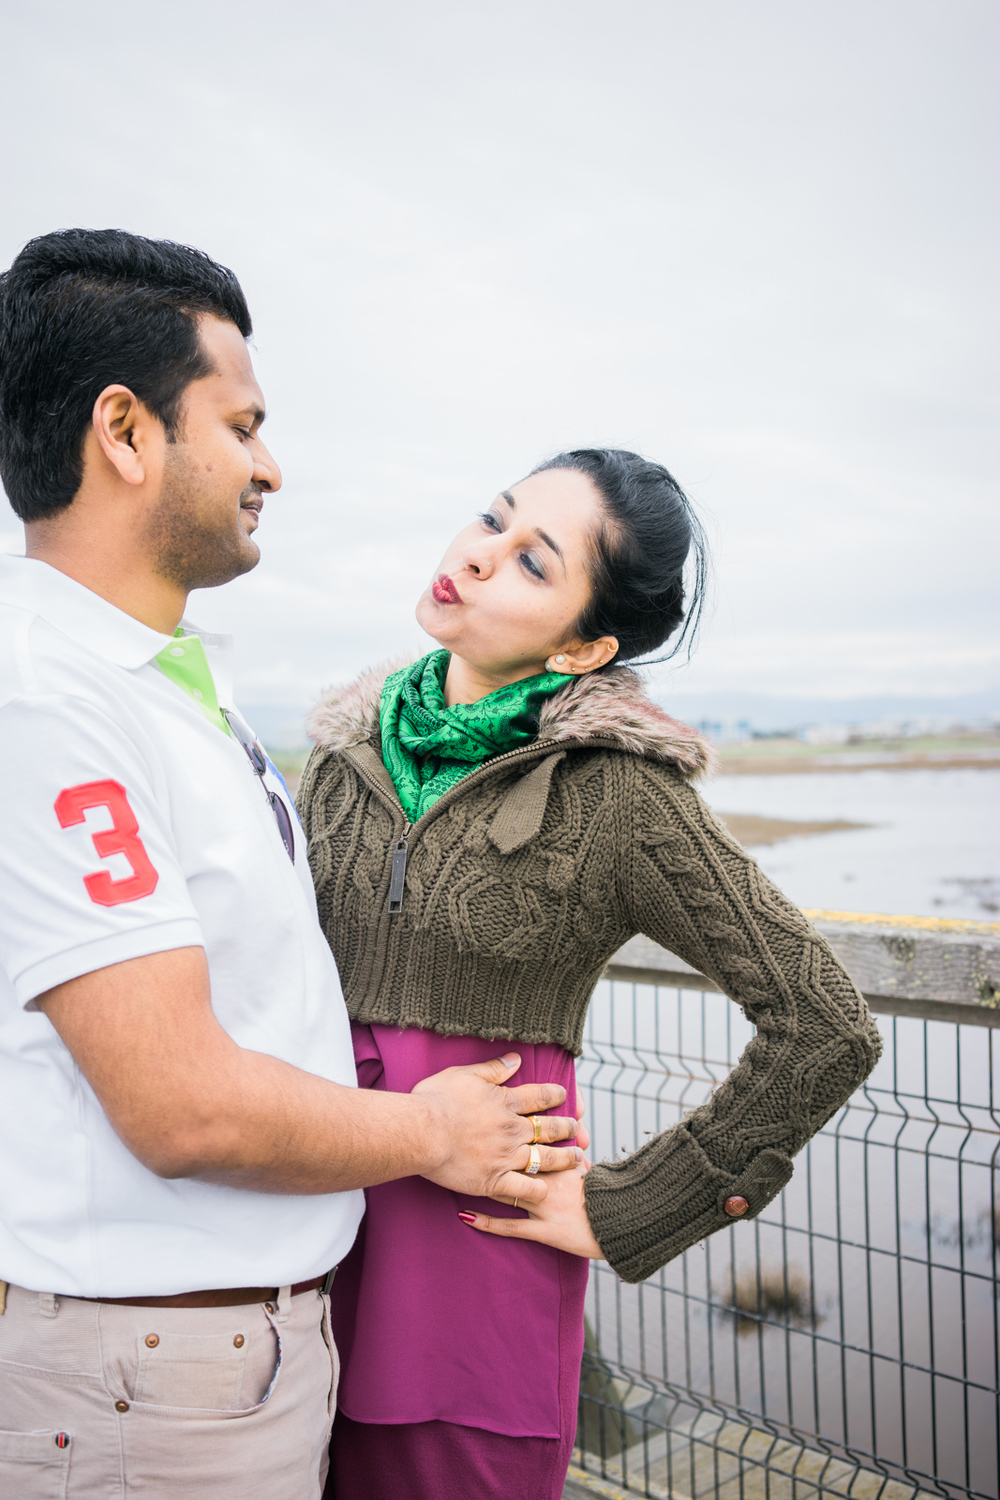 Baylands-park-valentines-day-couples-engagement-lifestyle-photography-sunnyvale-afewgoodclicks.net-82.jpg